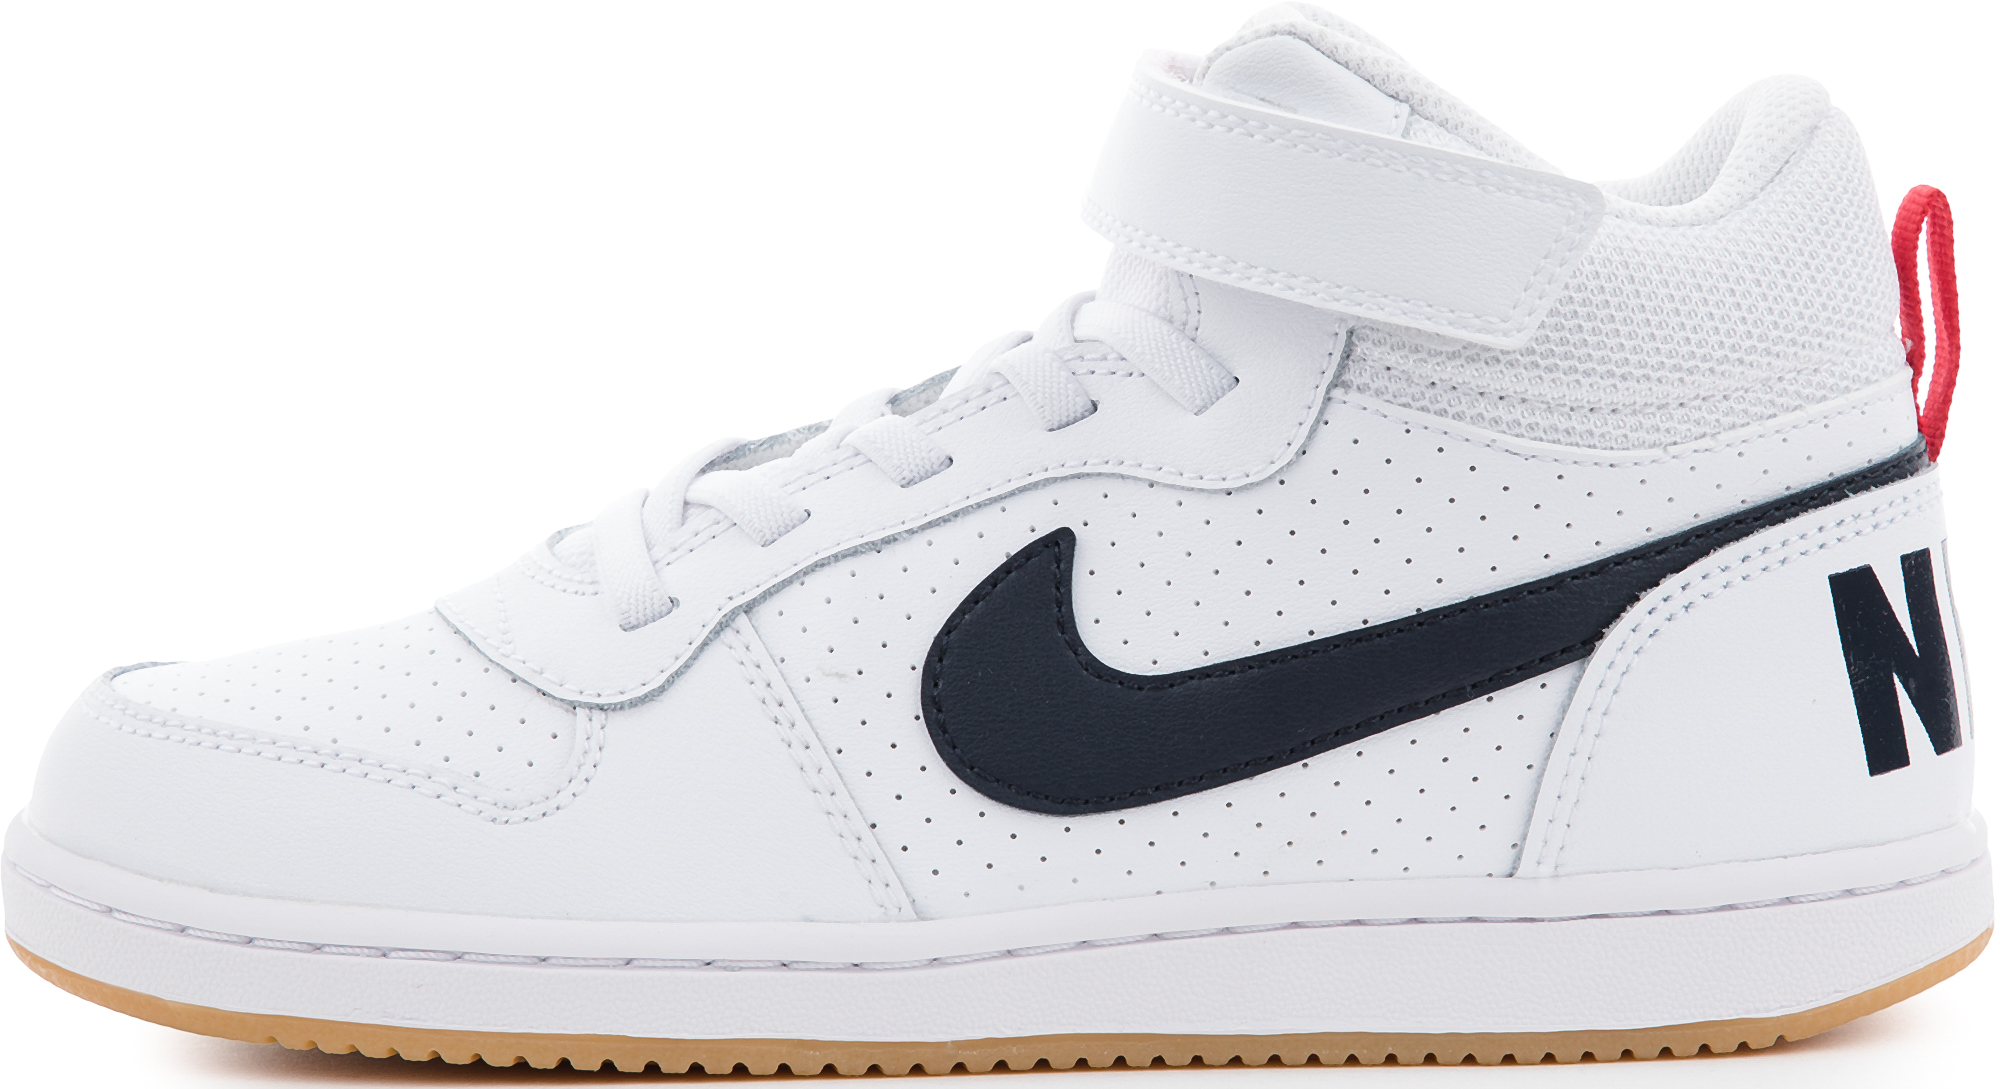 Nike Кеды для мальчиков Nike Court Borough Mid, размер 30 кеды nike кеды nike court borough mid td